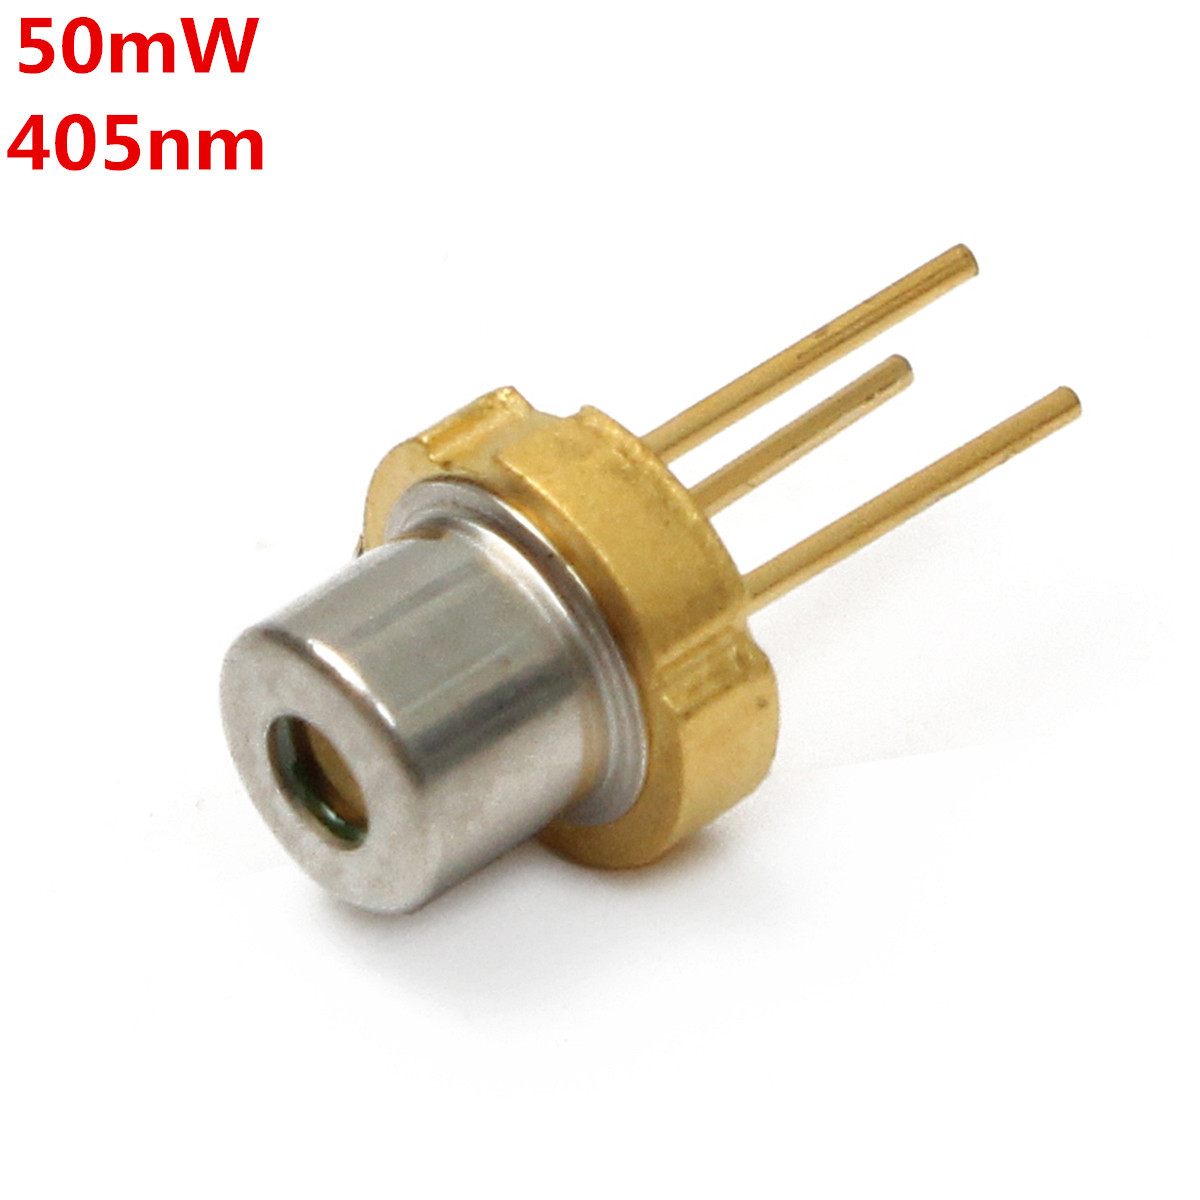 Metal SLD3232VF 405nm 50mw CW Violet/Blue Laser Diode LD SLD3232VF For SONY